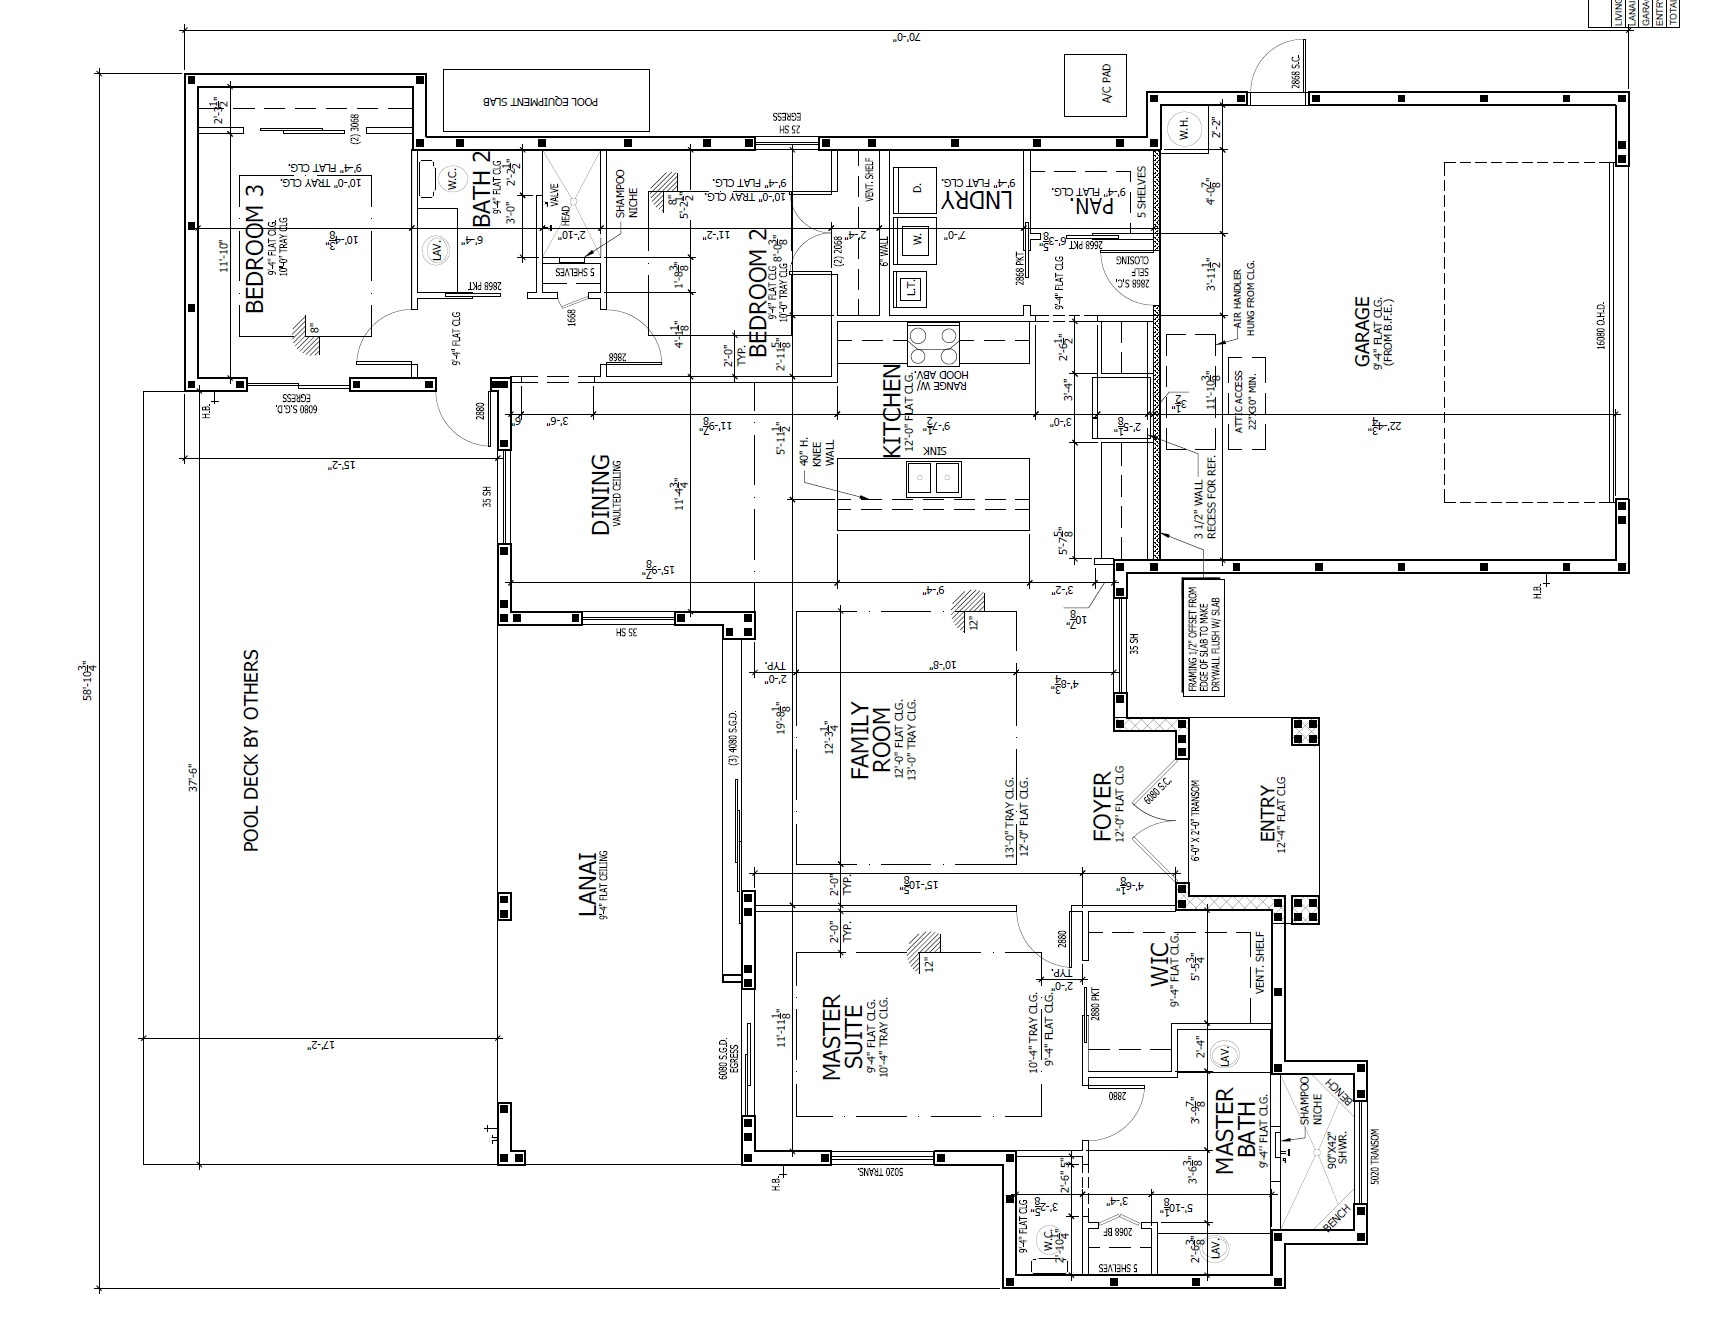 Korson-Revised-Floor-Plan-10-15-20.jpg